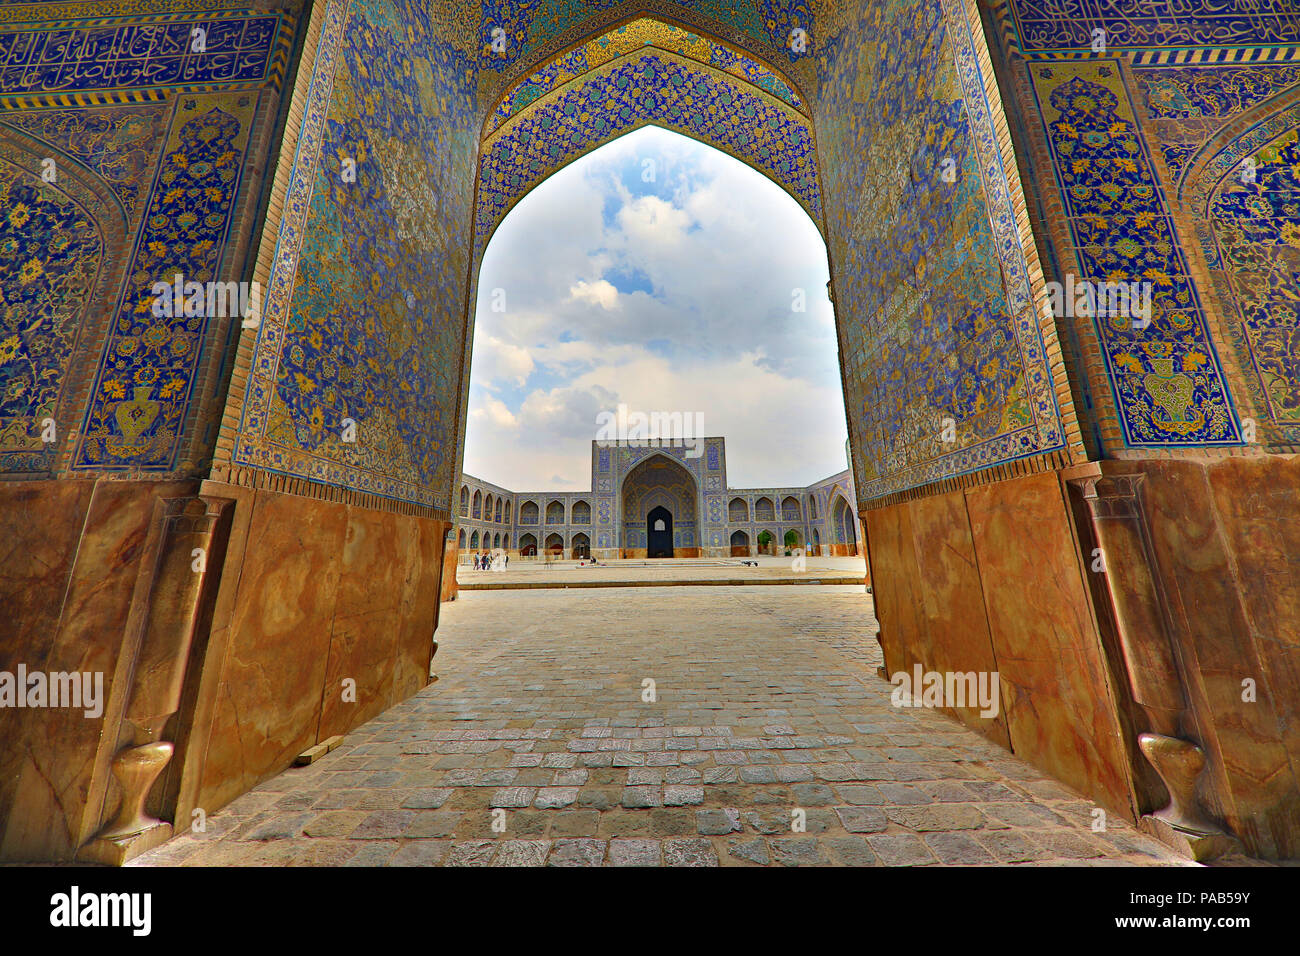 Shah Mosque known also as Imam Mosque through monumental gate, located in Naghshejehan square, in Isfahan, Iran - Stock Image